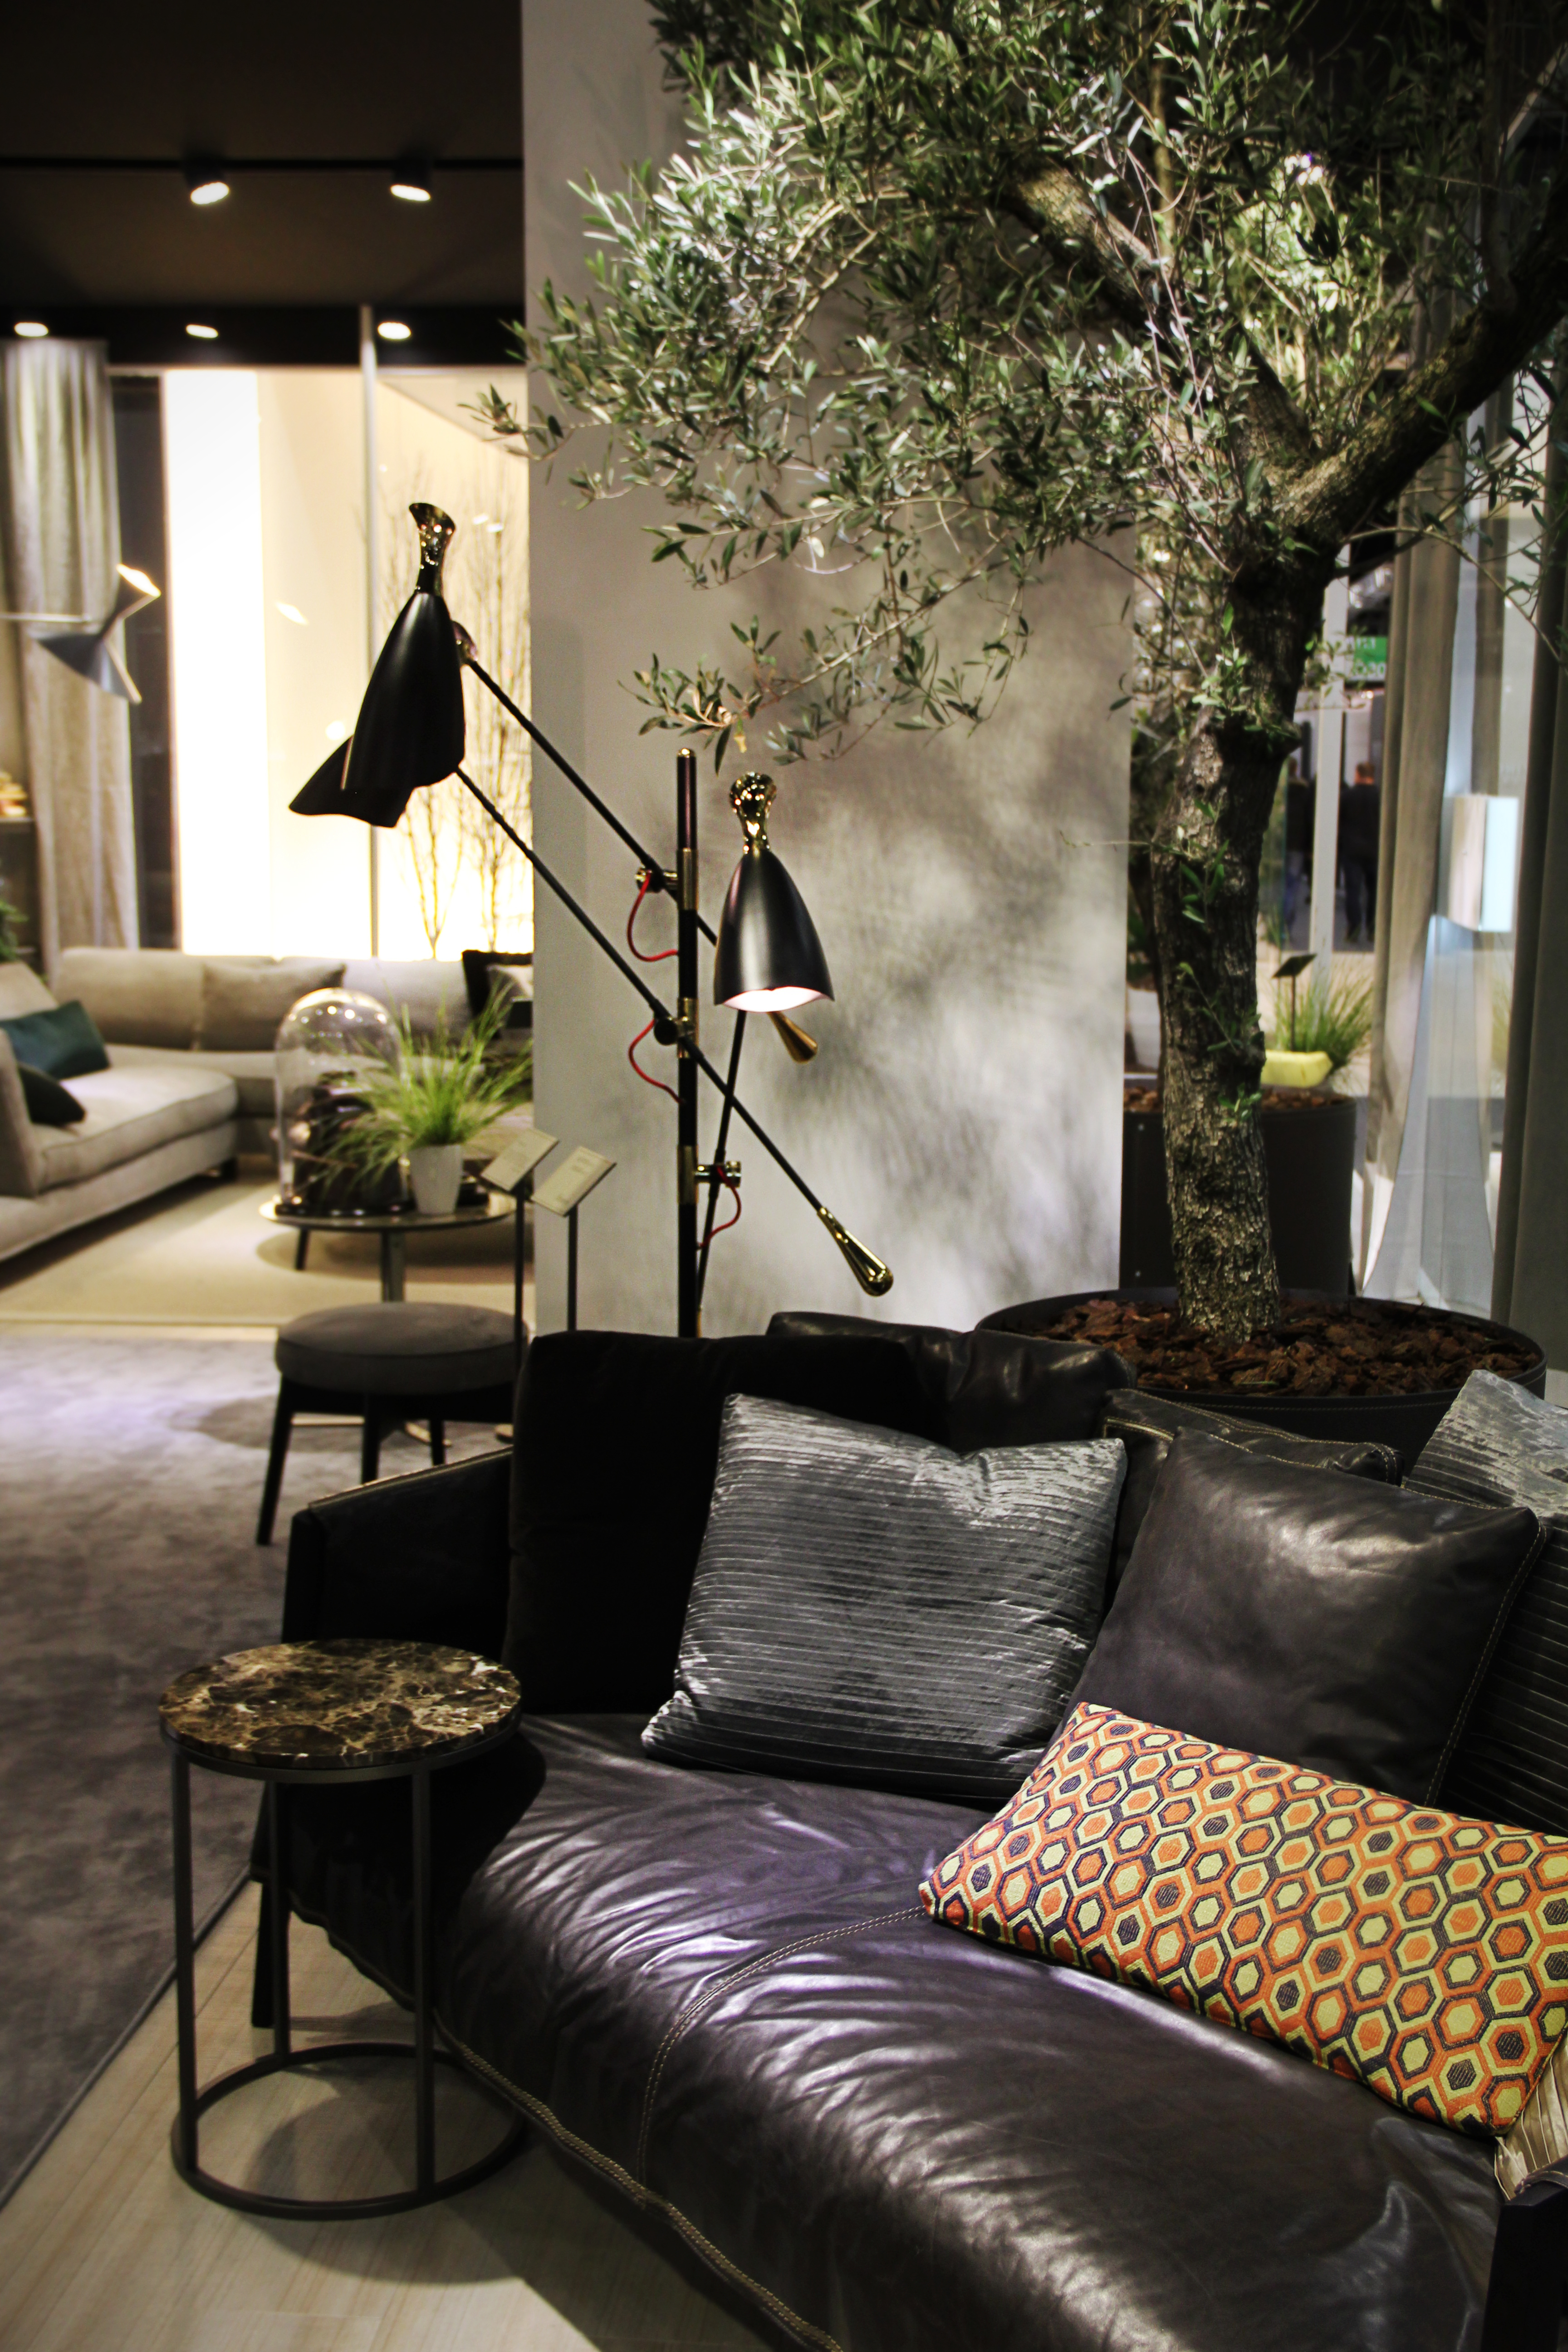 contract floor lamps contract floor lamps Contract Floor Lamps At Equip Hotel 2018 You Must See Now Contract Floor Lamps At Equip Hotel 2018 3